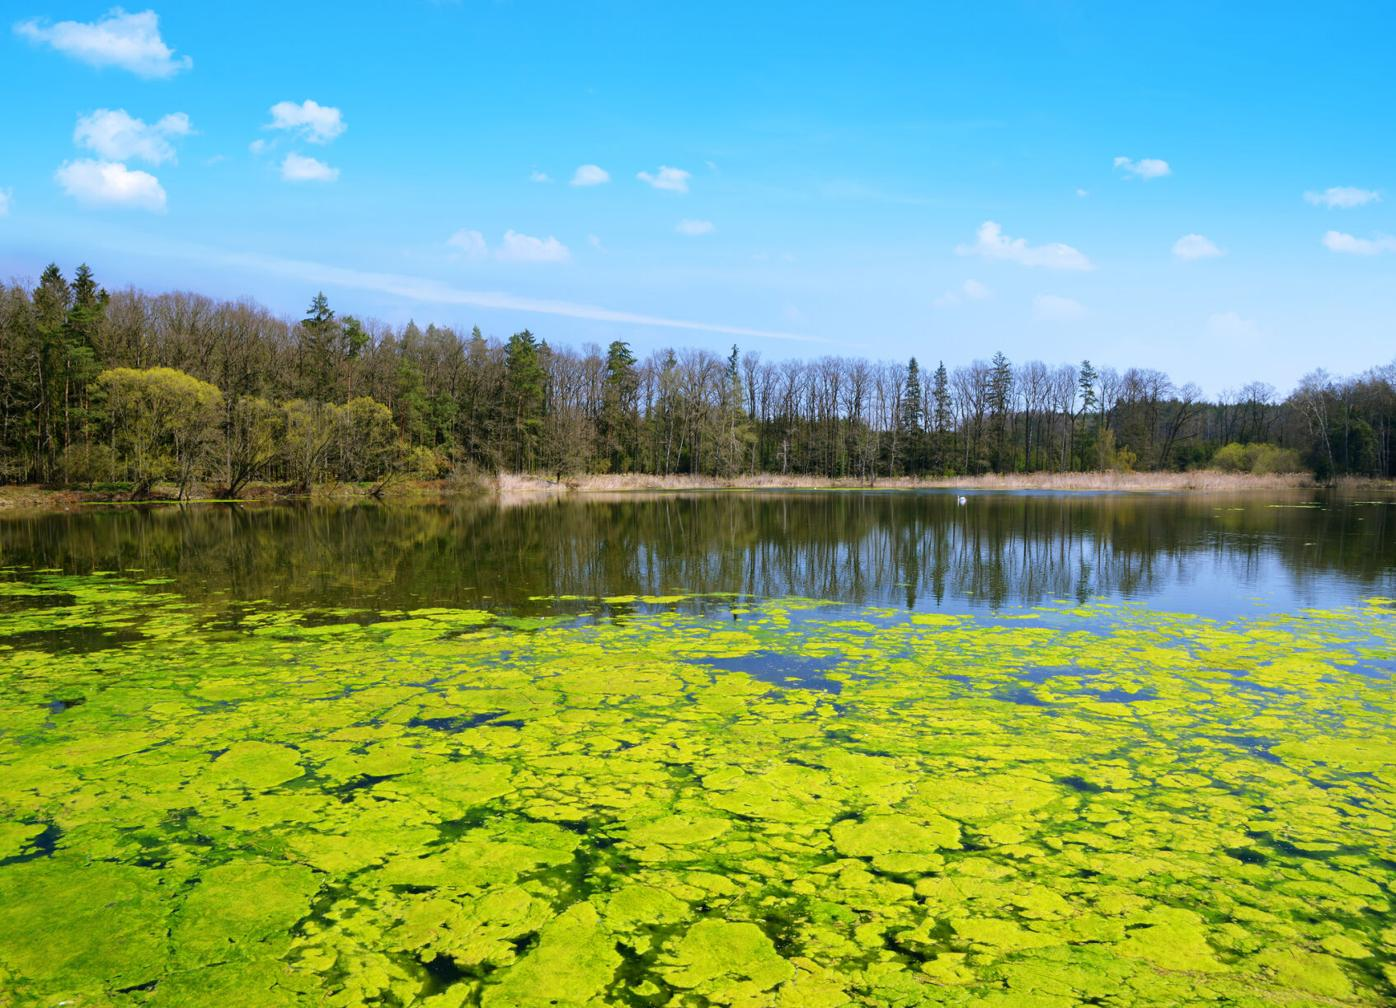 Green algae on the water surface of a pond.